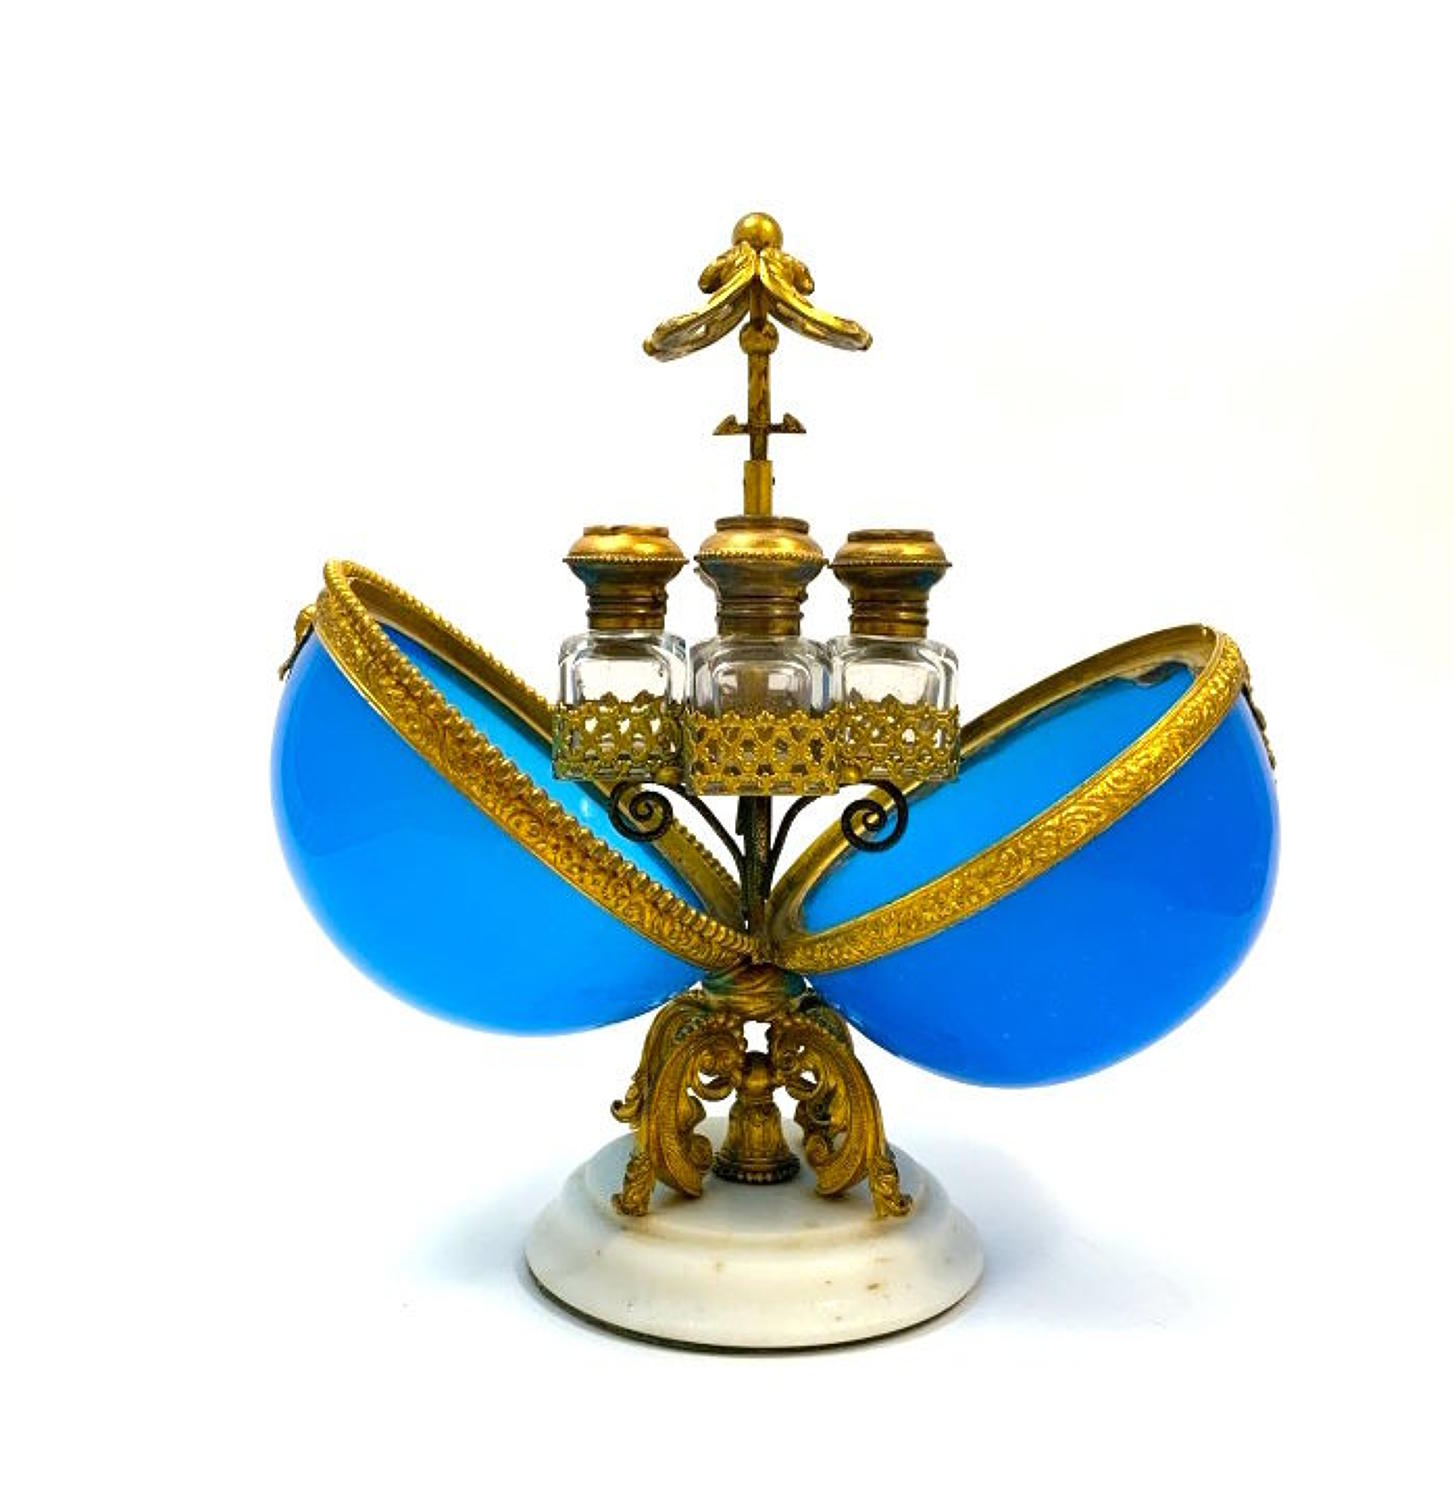 A Large Antique Palais Royal Blue Opaline Glass Perfume Casket